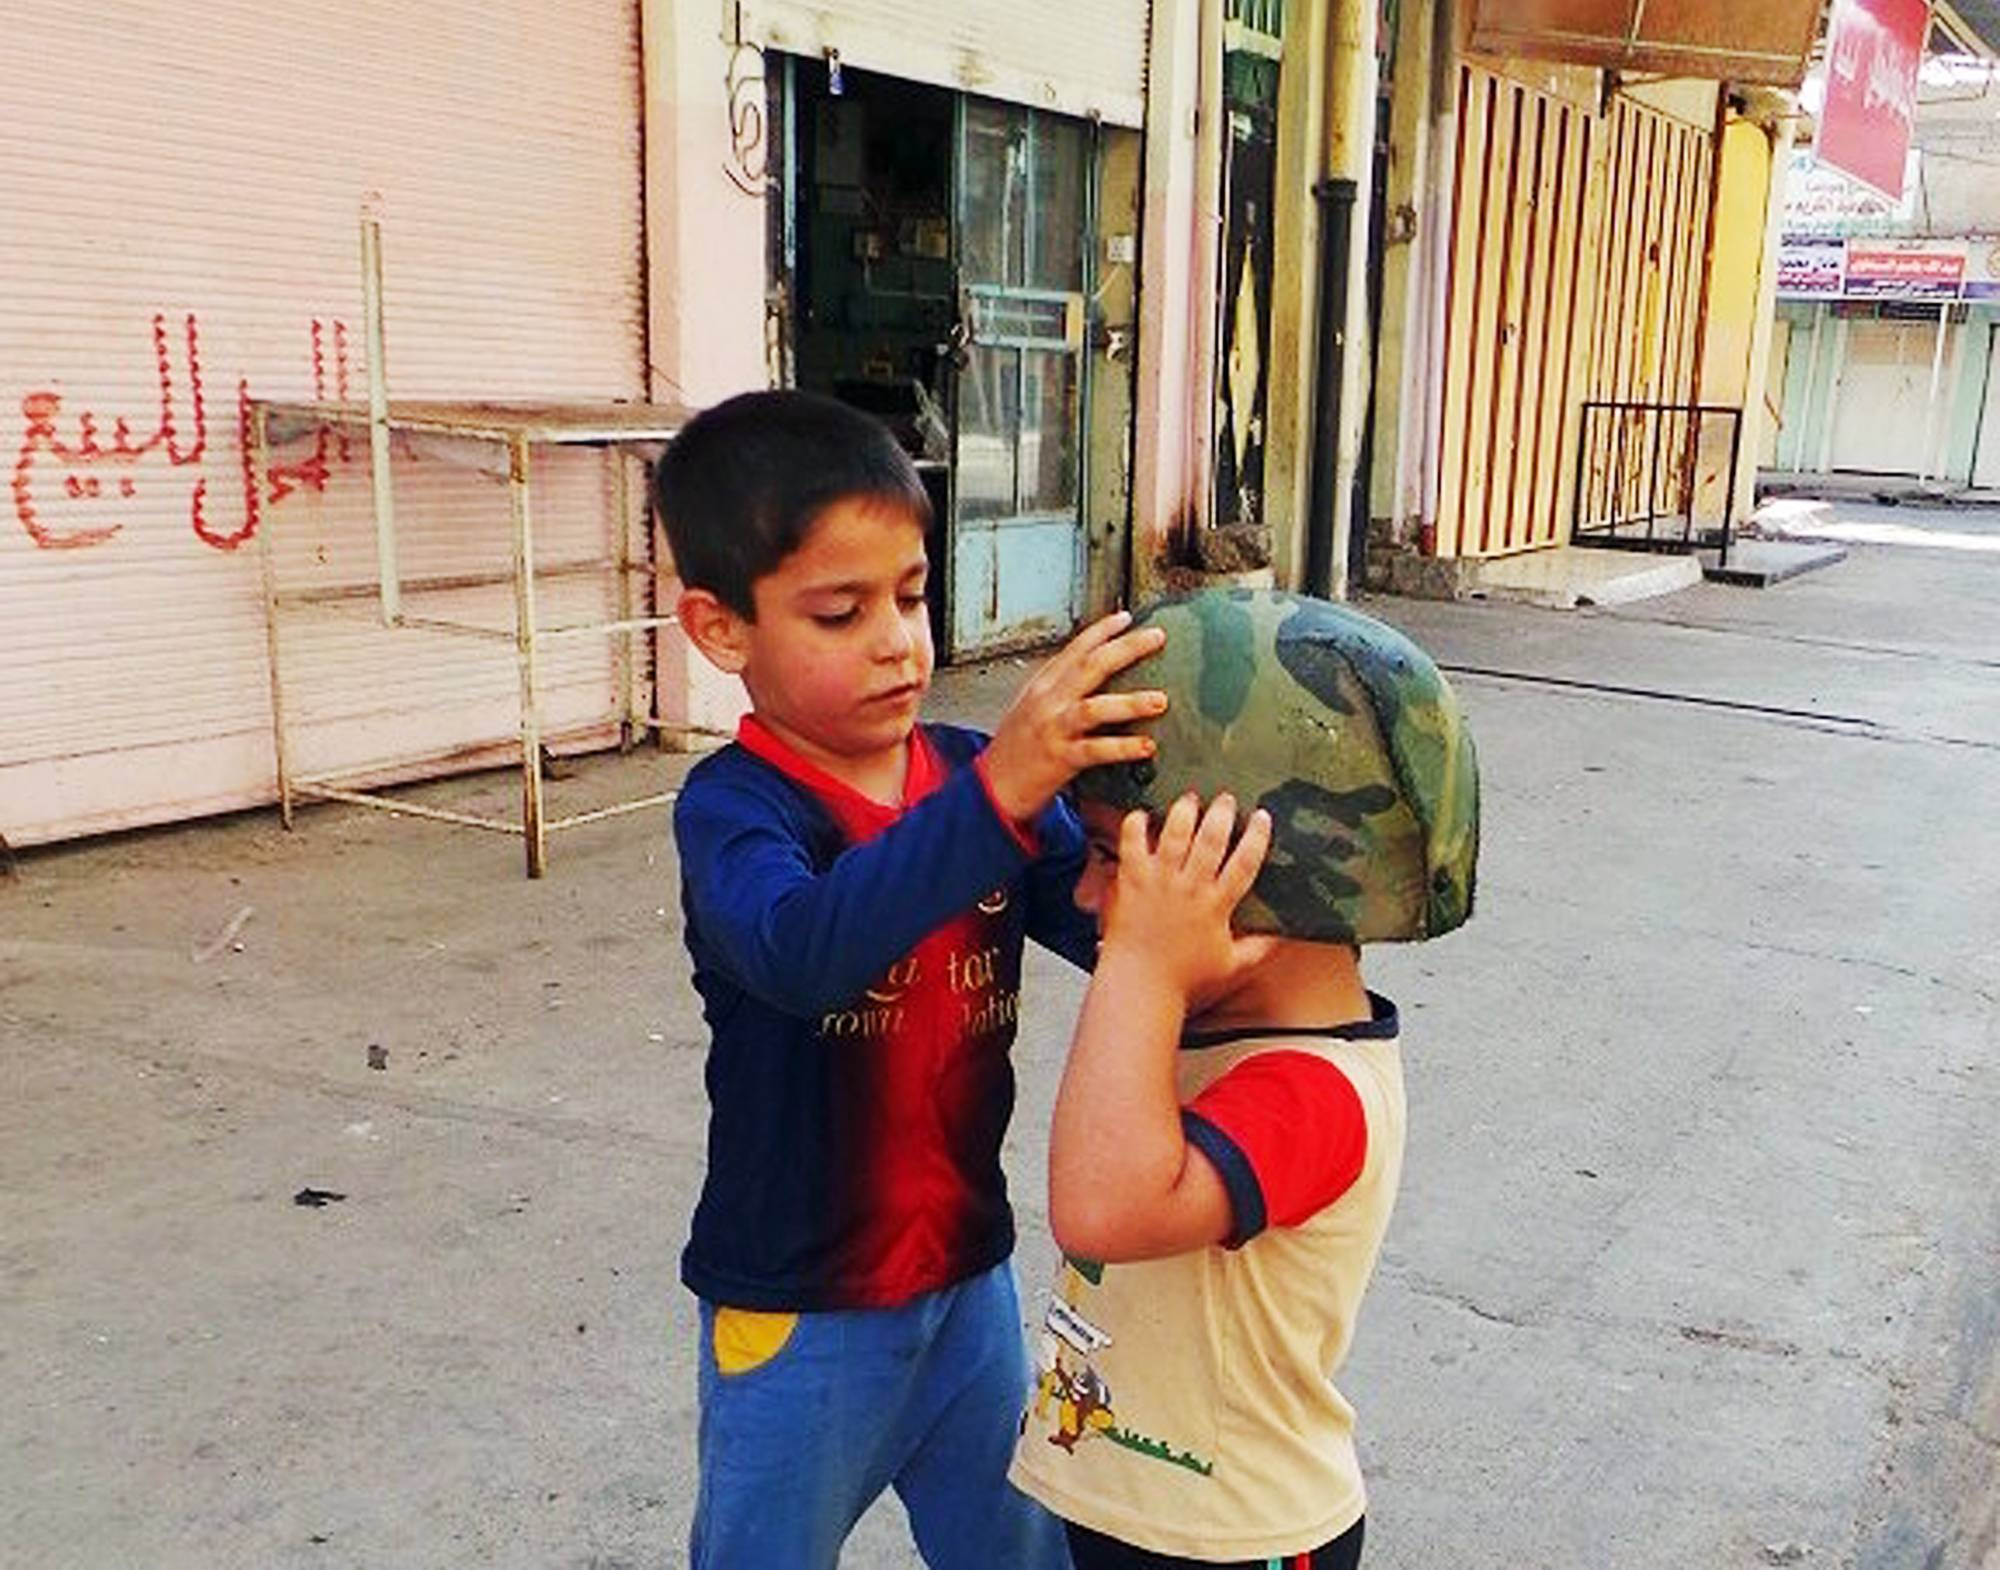 Children play with an Iraqi Army helmet left behind after militants from the al-Qaida-inspired Islamic State of Iraq and the Levant (ISIL) took over the northern city of Mosul, Iraq, Friday, June 13, 2014.